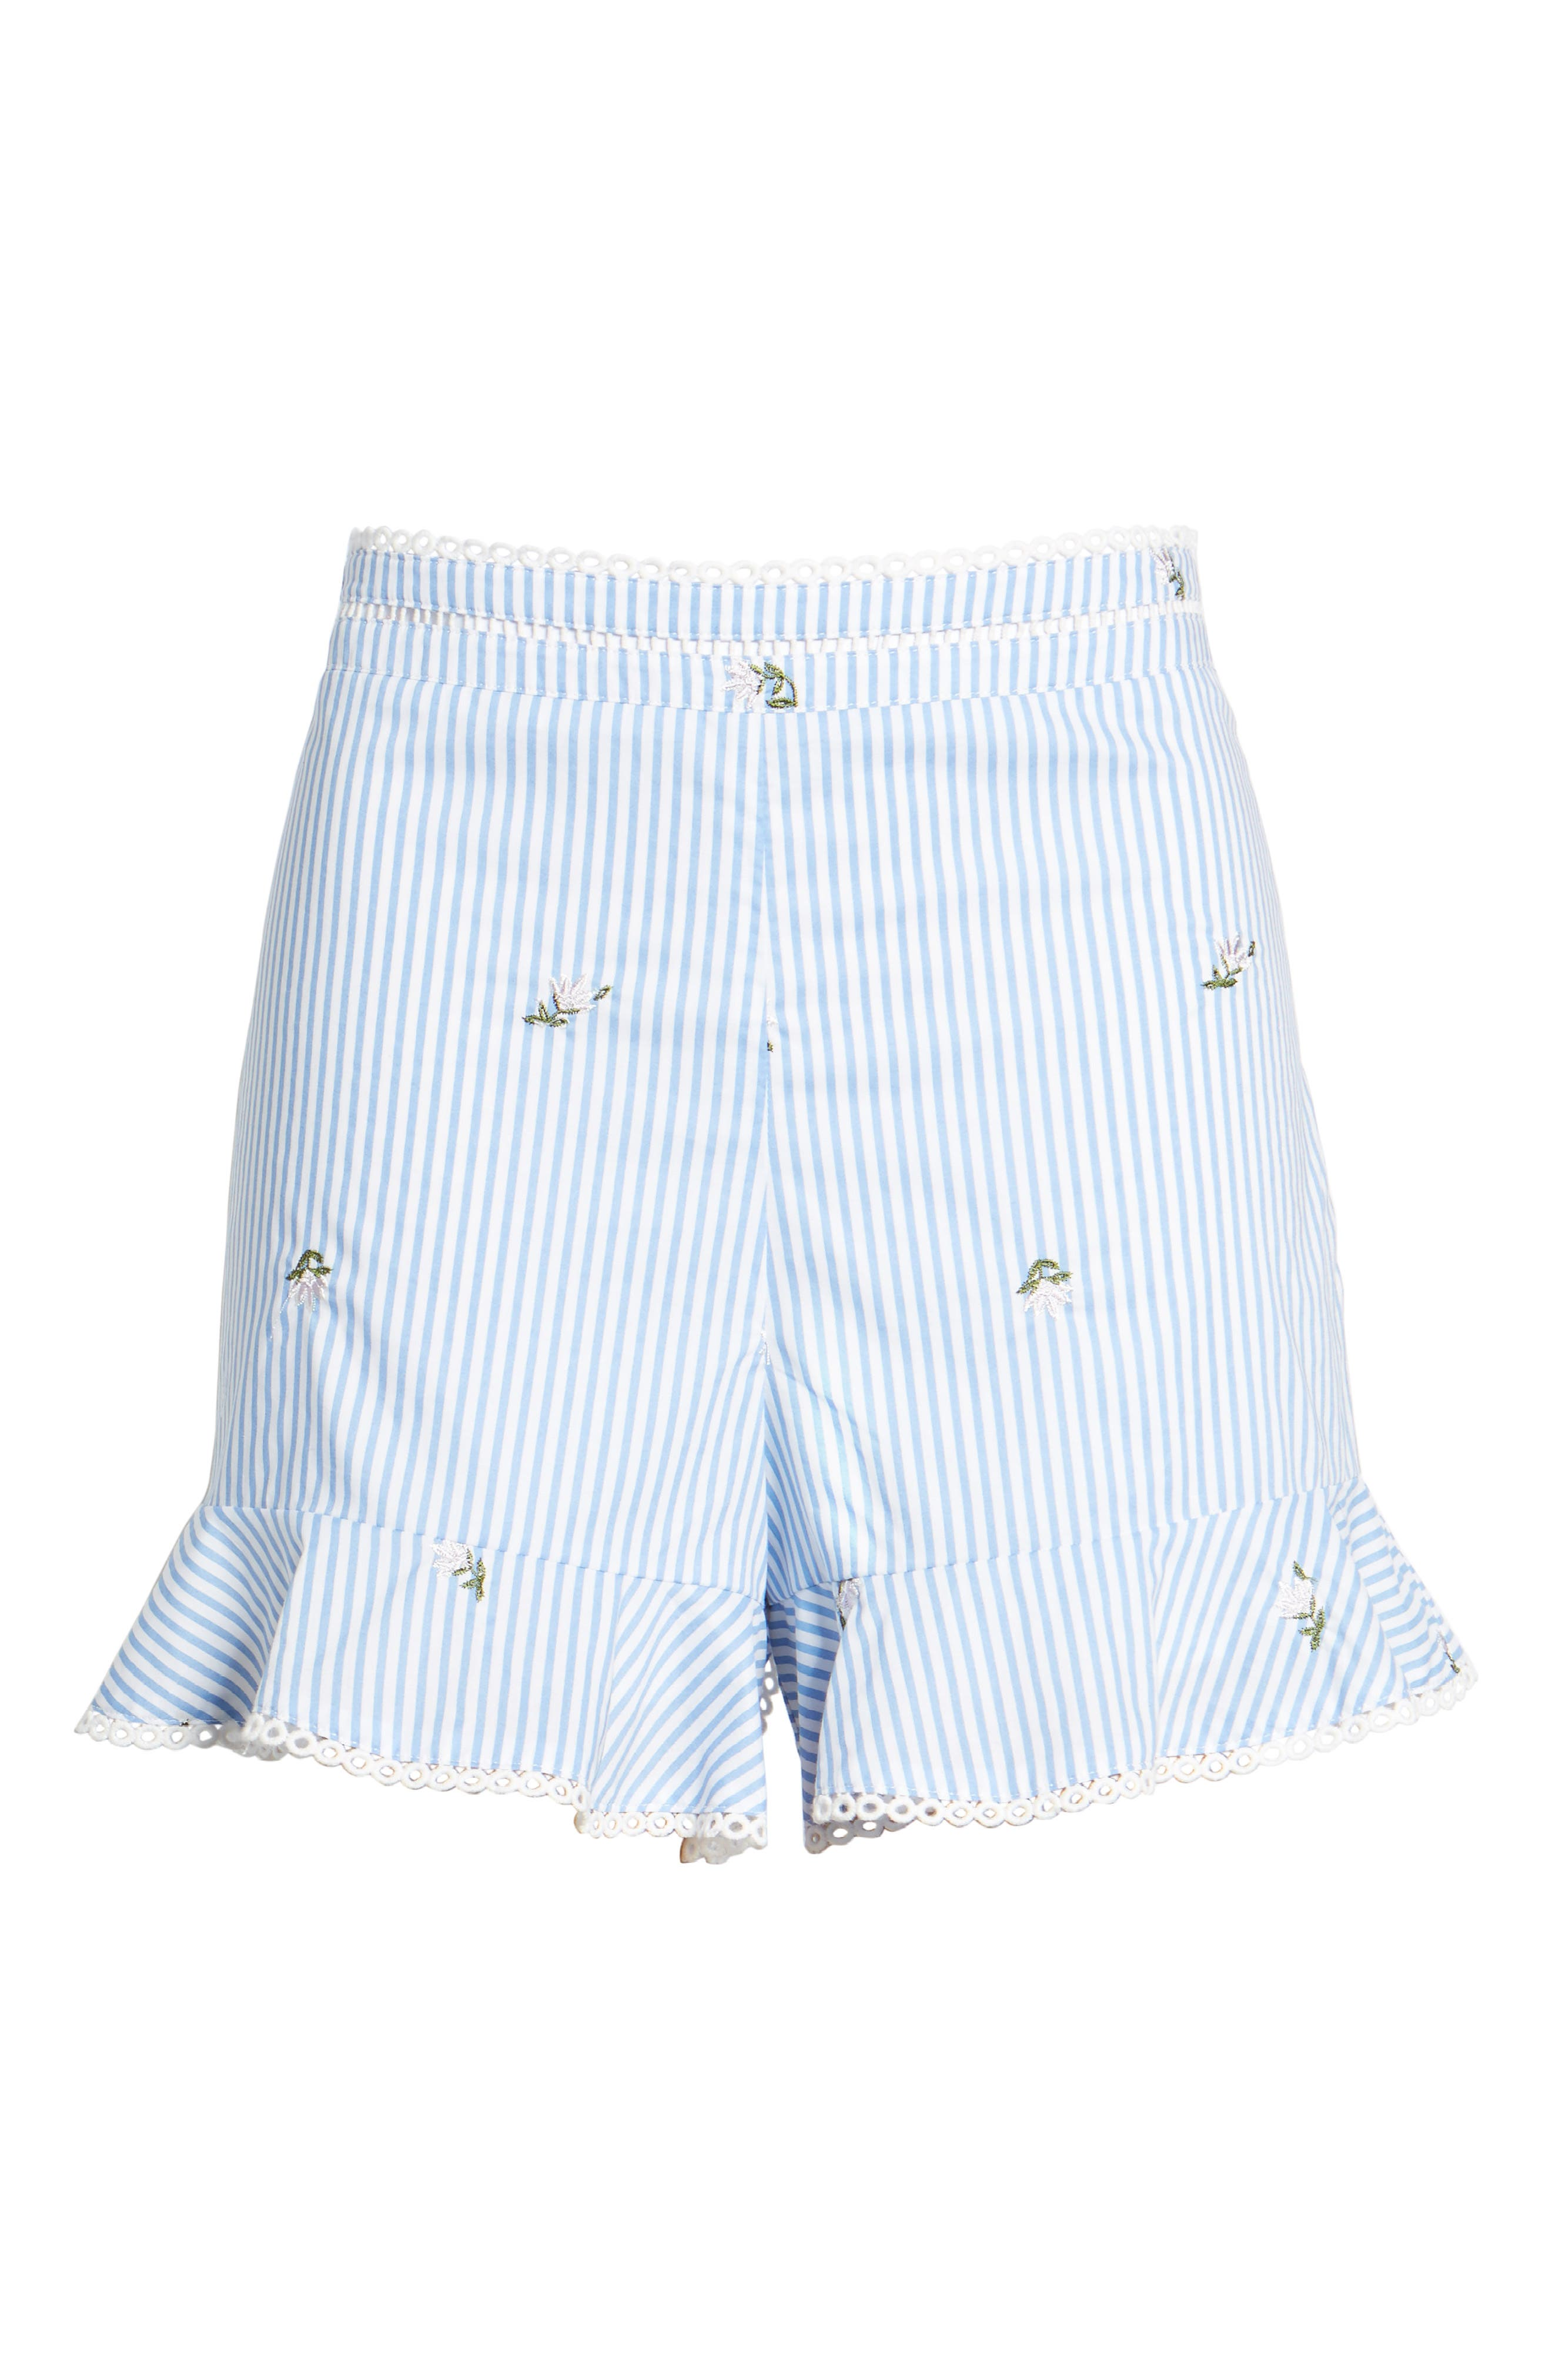 Embroidered Shorts,                             Alternate thumbnail 6, color,